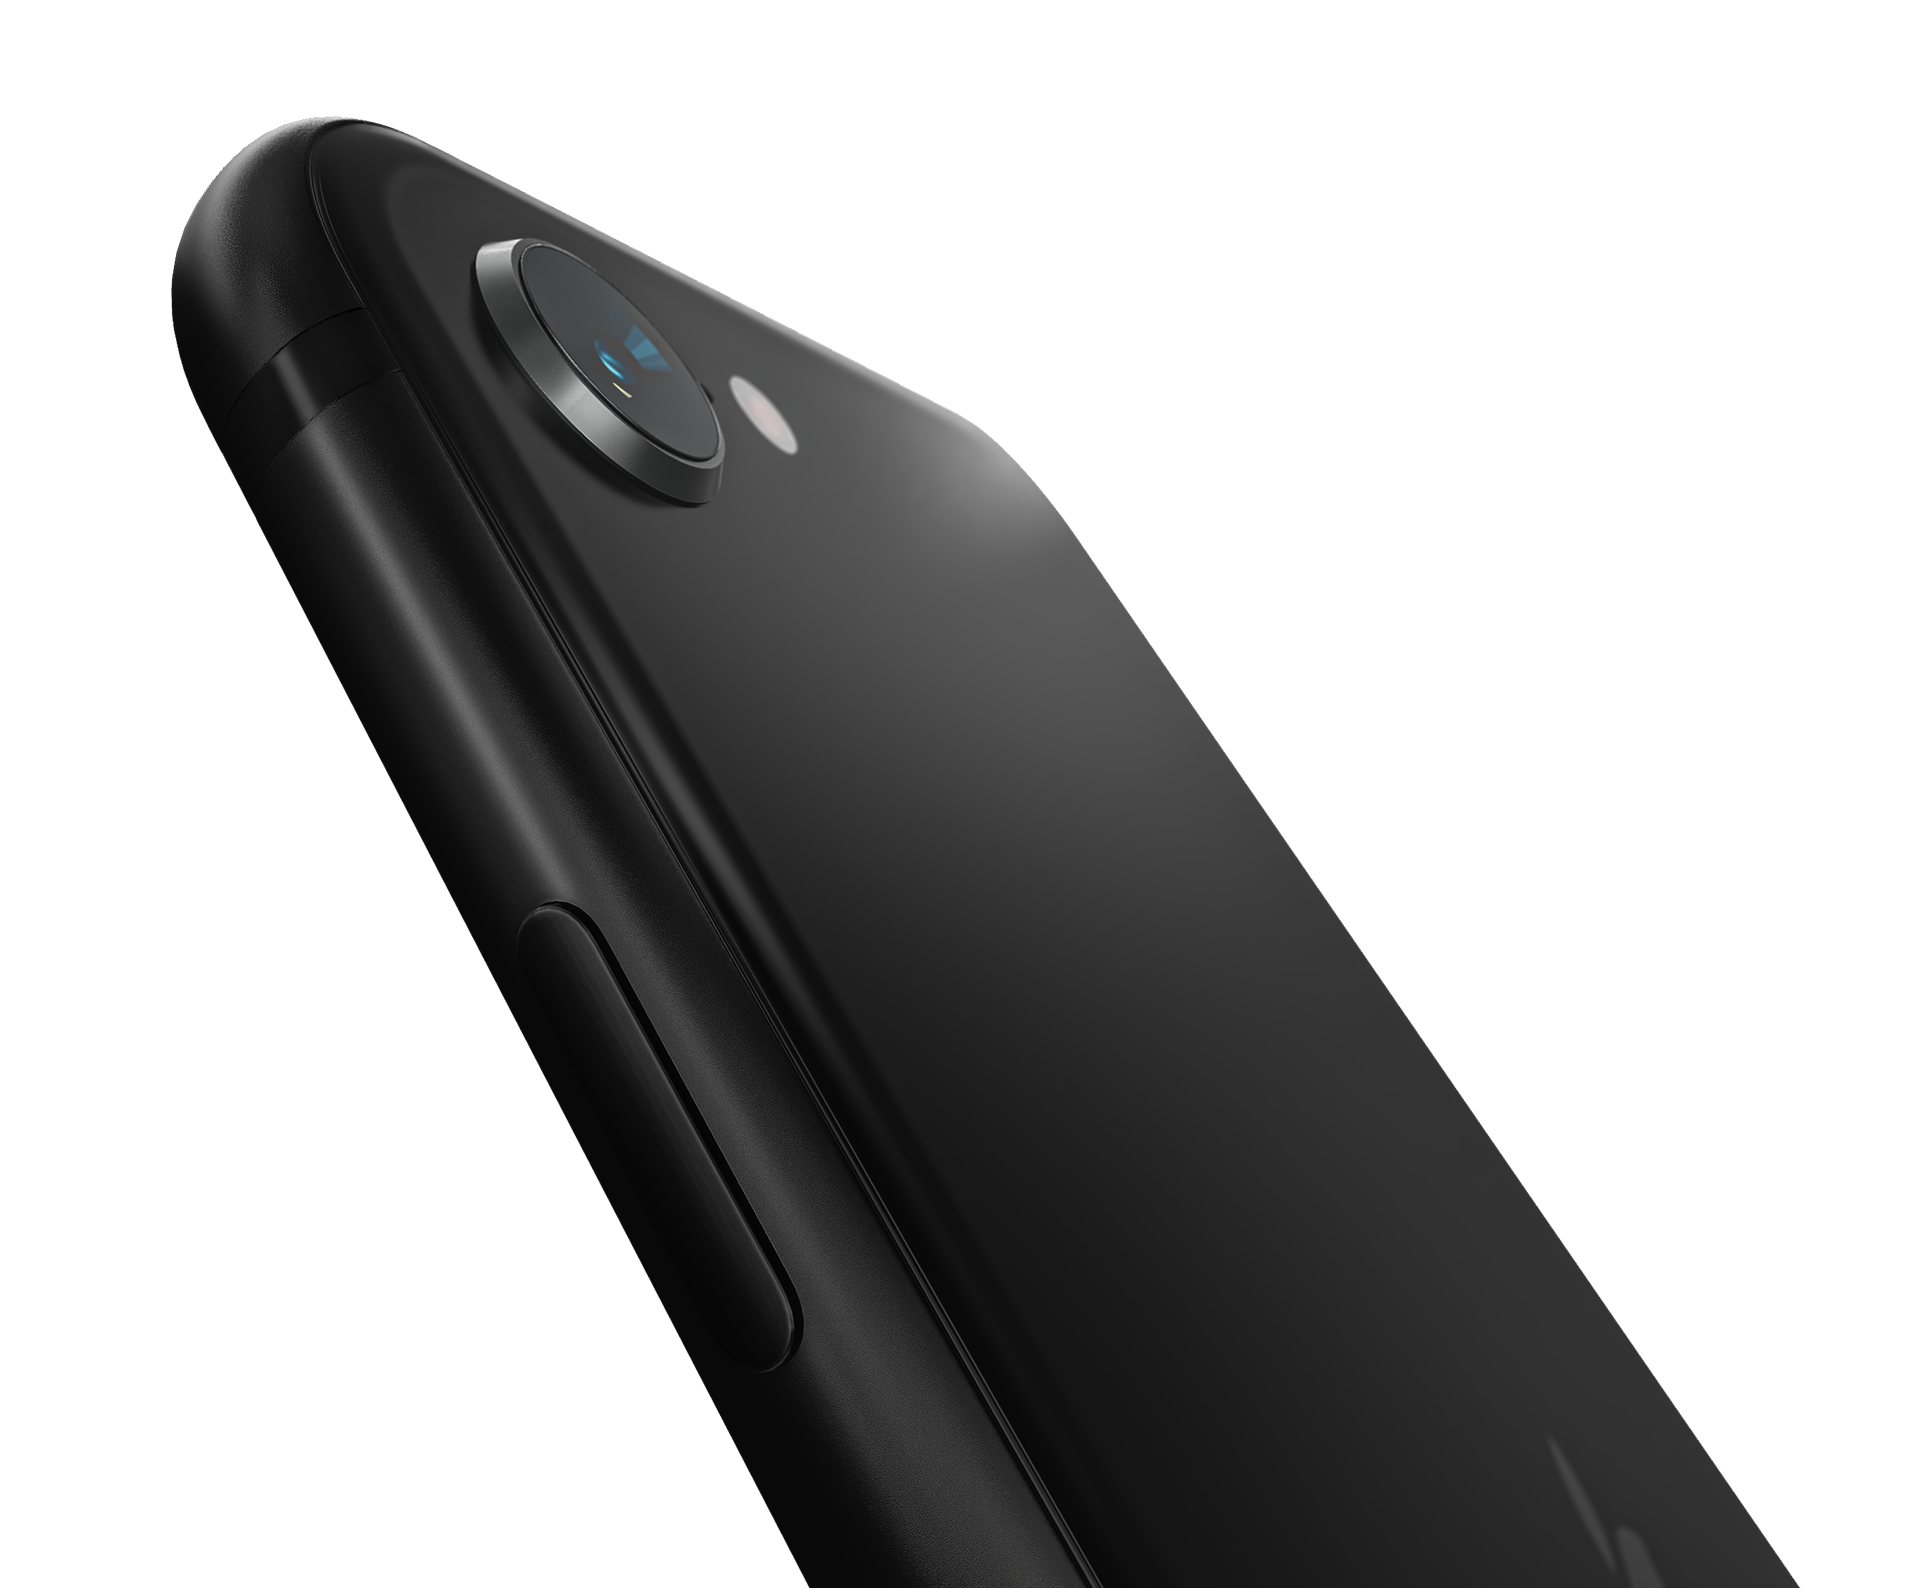 Iphone SE Product Rendering